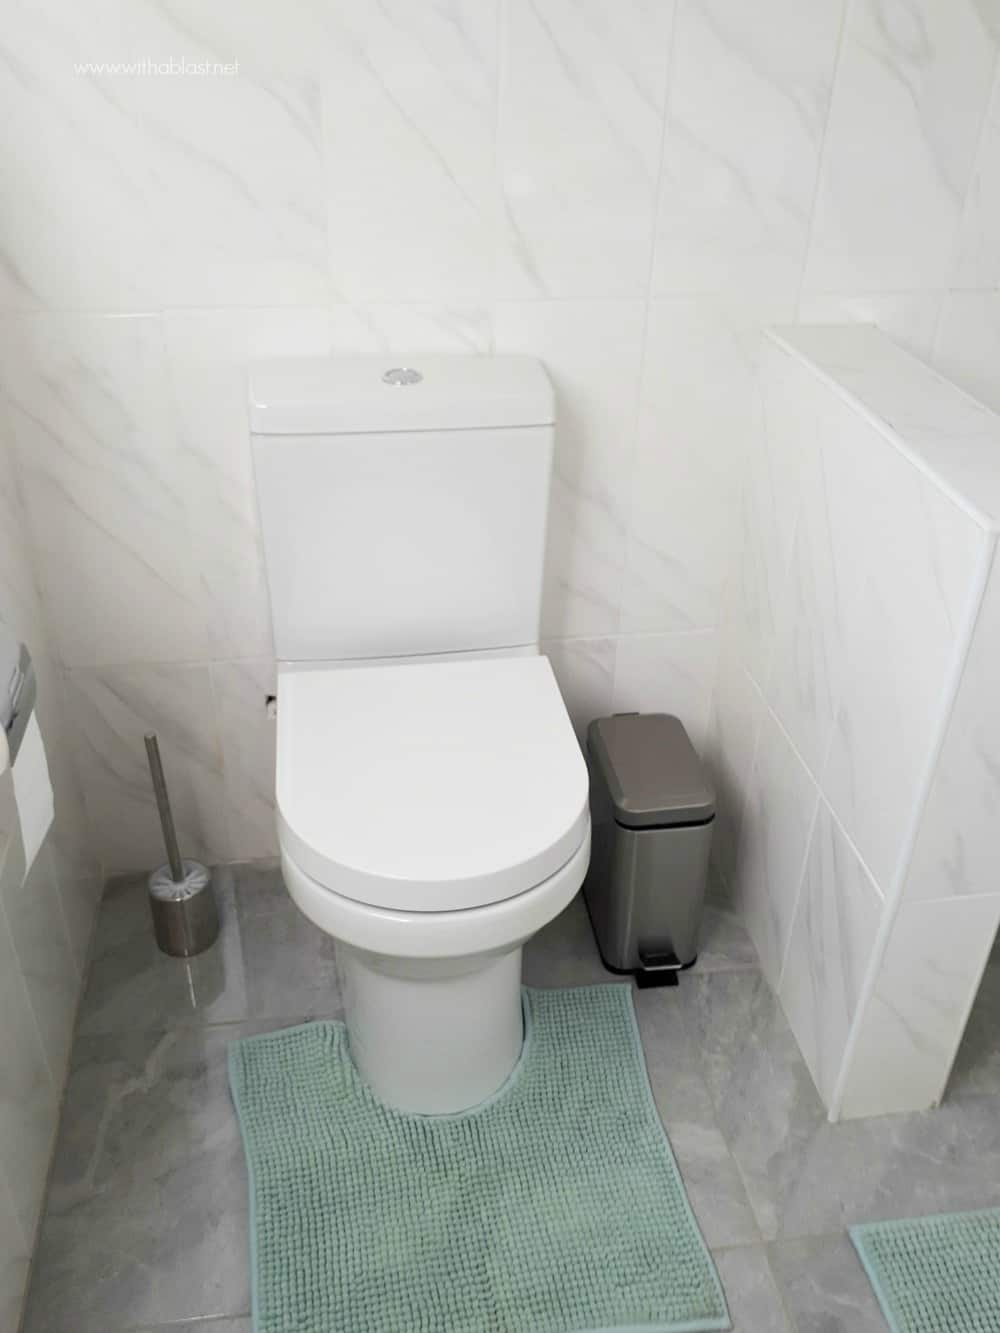 Bathroom Makeover [toilet / loo]